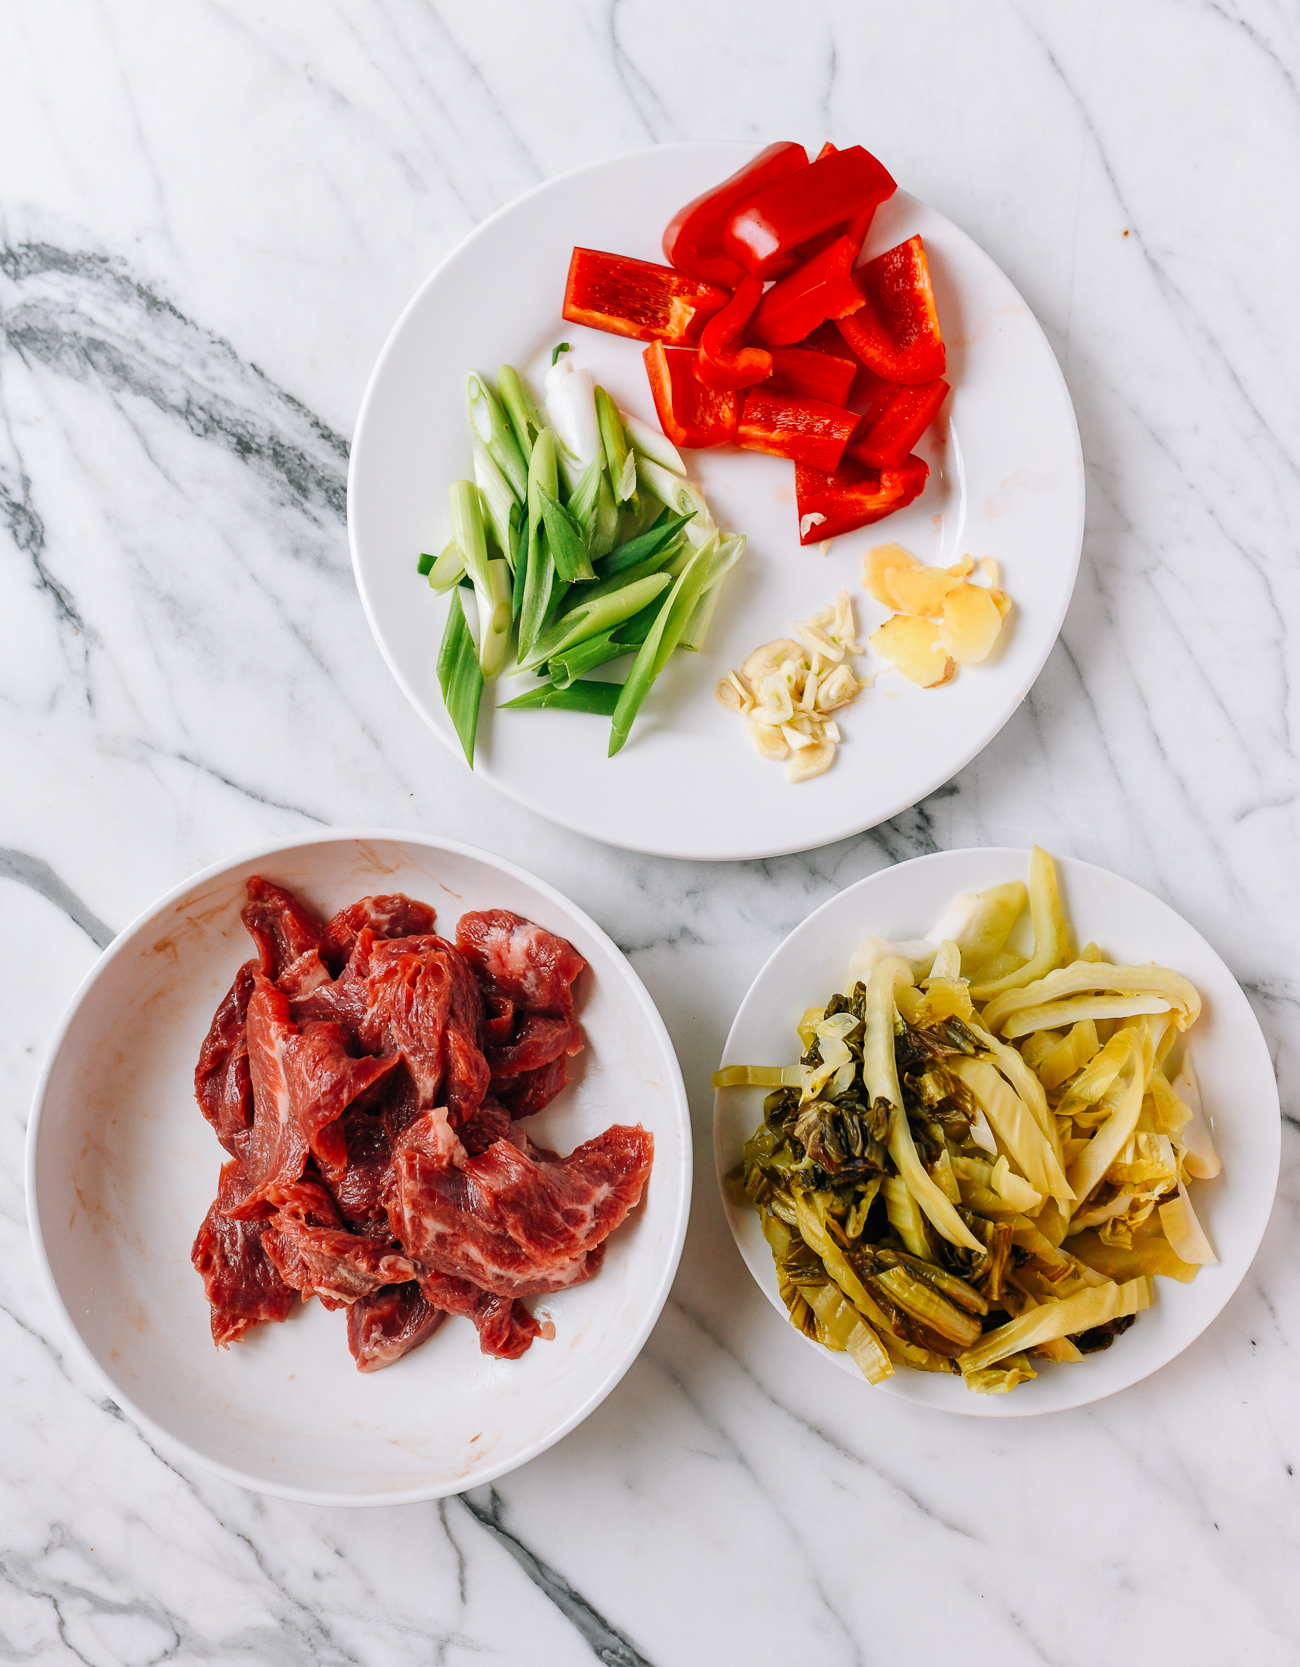 Marinated flank steak, scallions, peppers, garlic, ginger, and haam choy